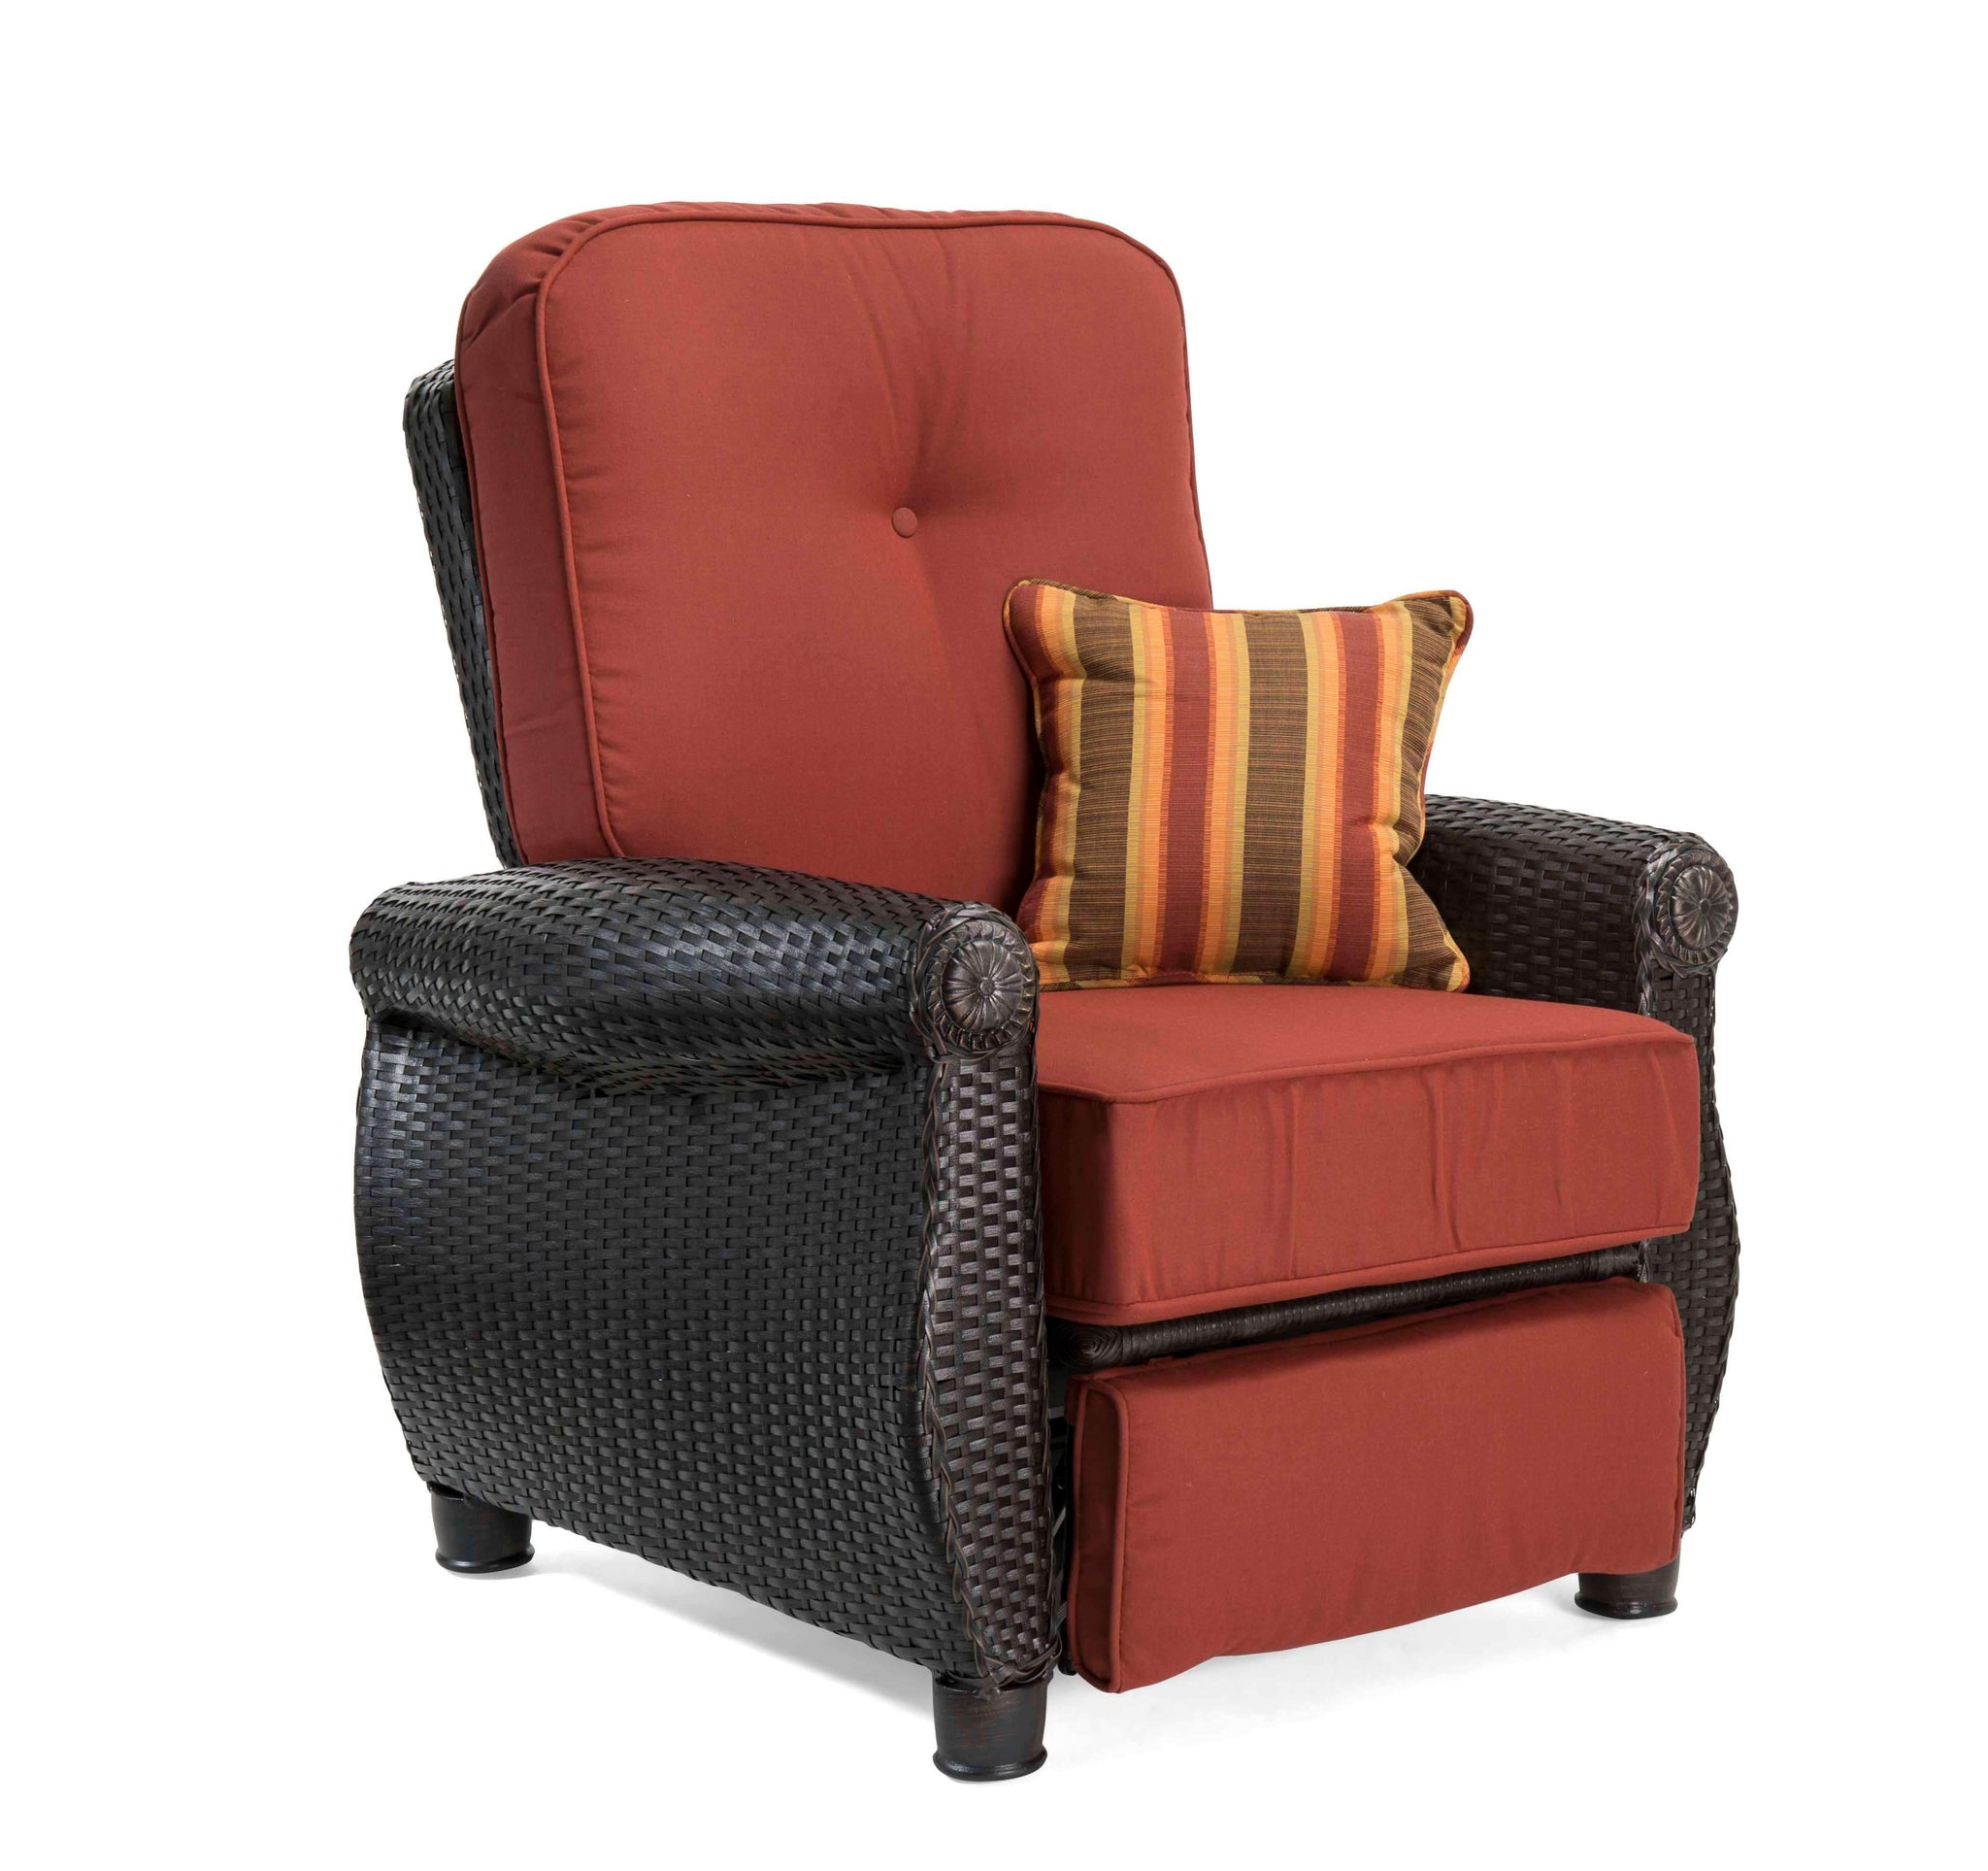 Breckenridge Patio Recliner Brick Red La Z Boy Outdoor